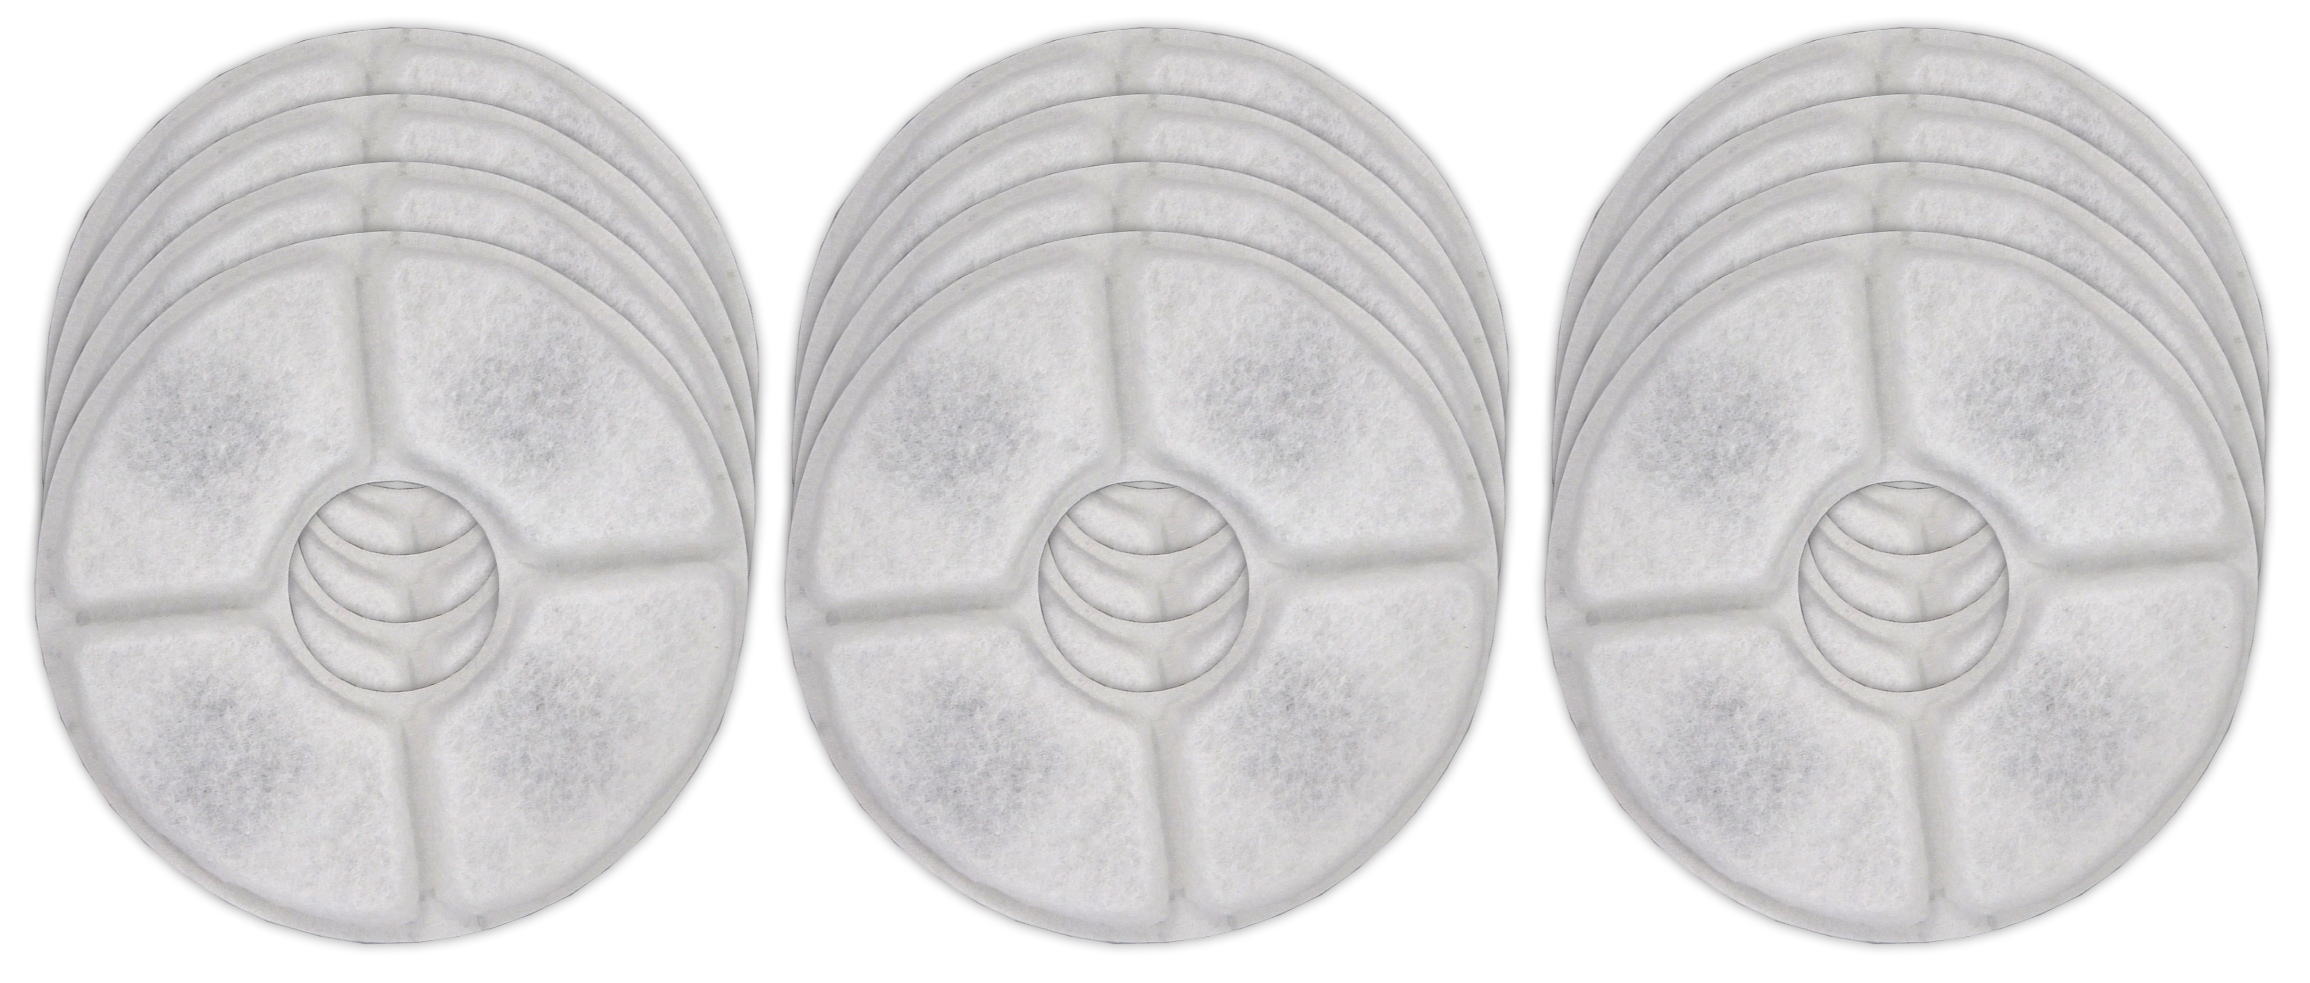 Pet Water Fountain Filter Pads With Active Carbon Cat Dog